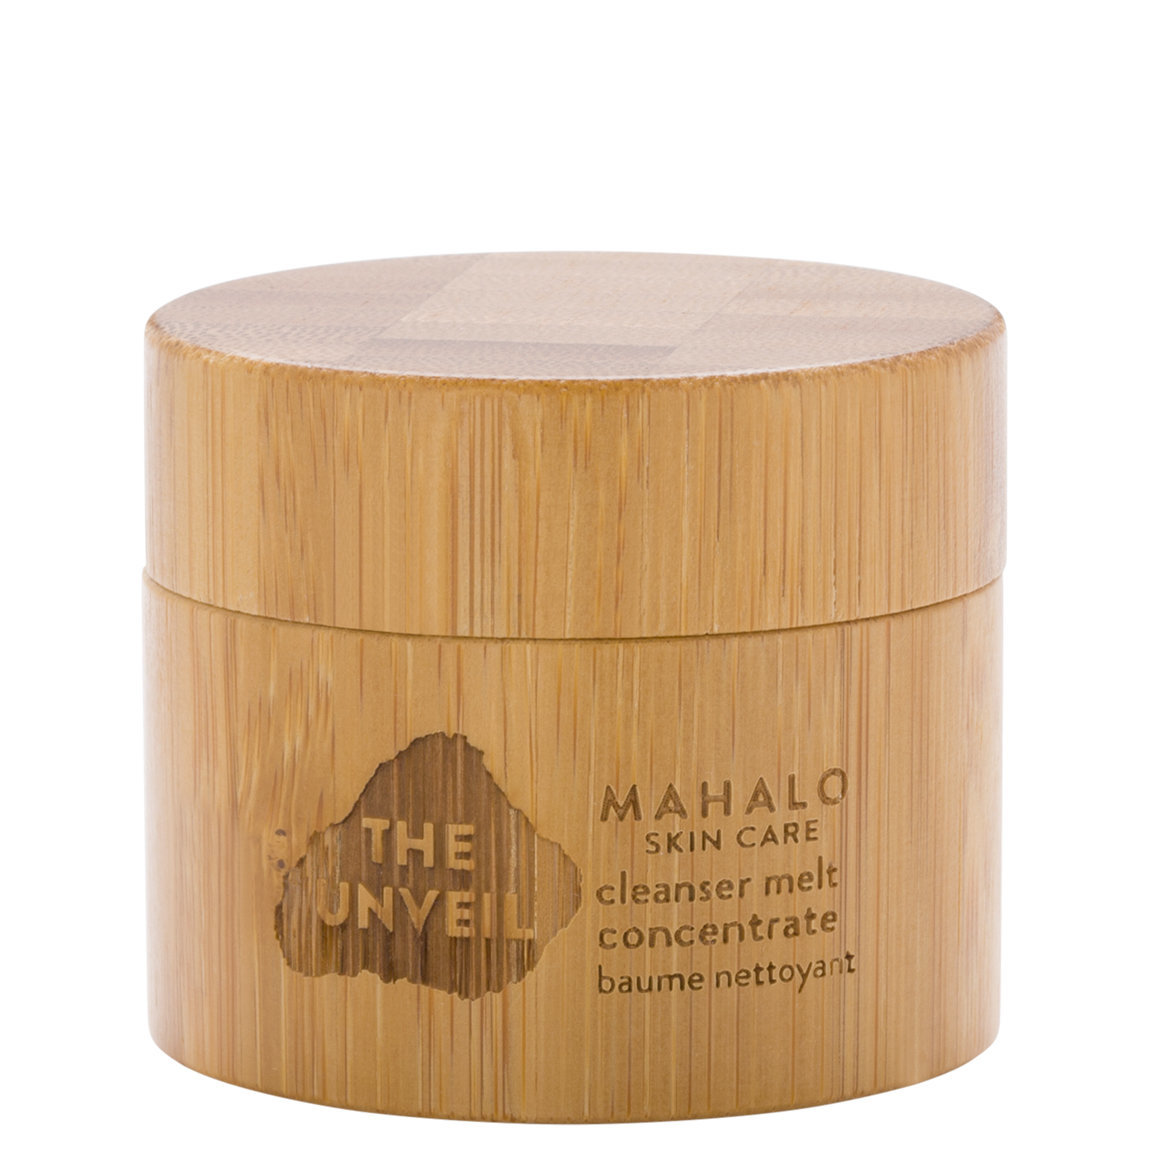 MAHALO Skin Care The UNVEIL Cleanser Melt Concentrate alternative view 1.